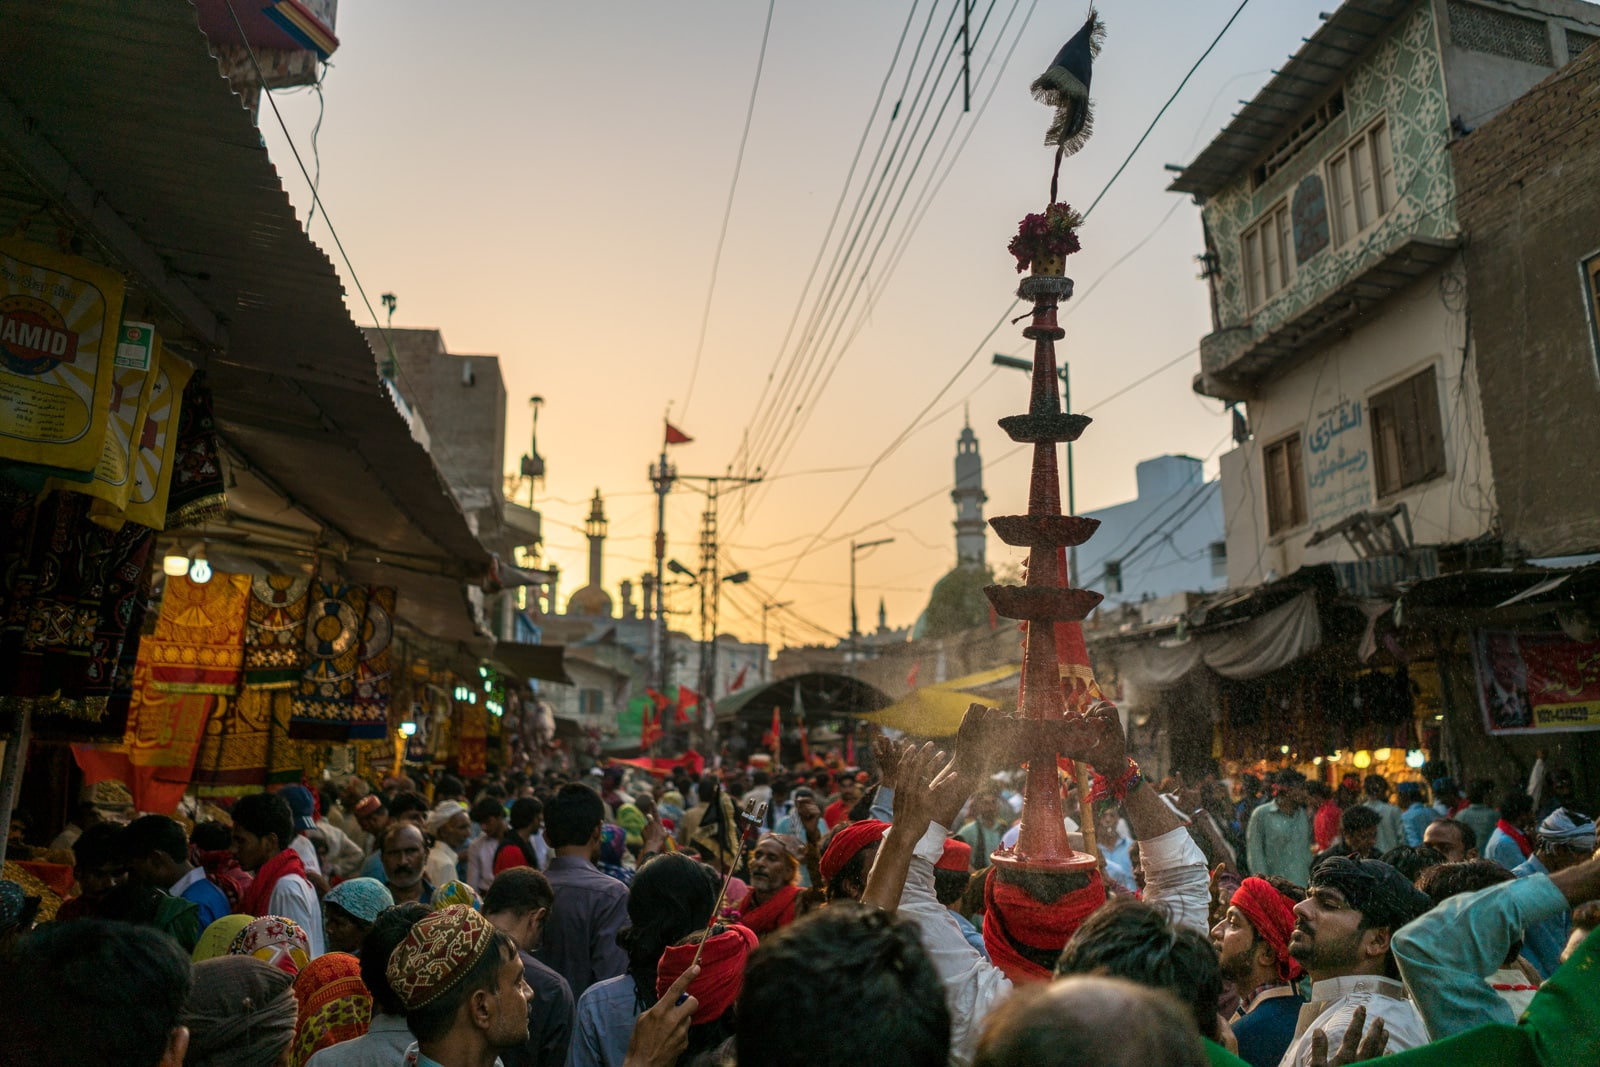 The Urs of Lal Shahbaz Qalandar in Sehwan, Pakistan - Busy streets and man carrying tower - Lost With Purpose travel blog